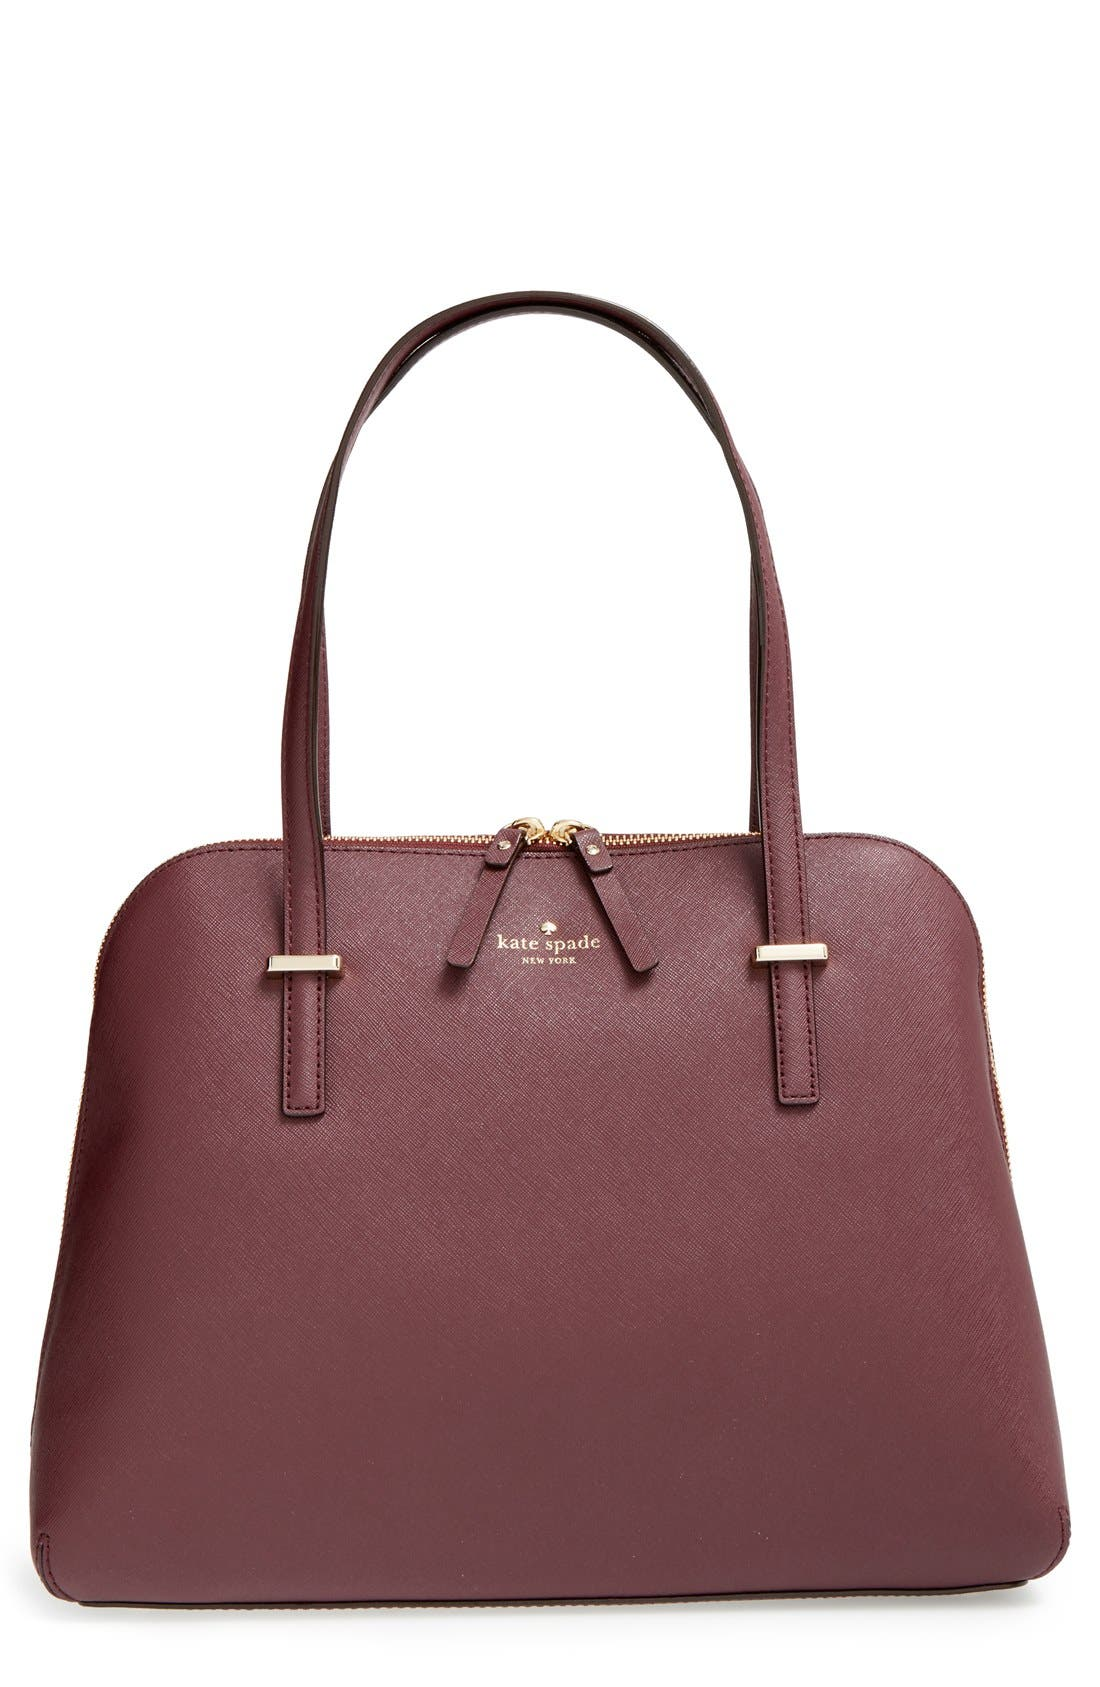 Alternate Image 1 Selected - kate spade new york 'cedar street - maise' shoulder bag